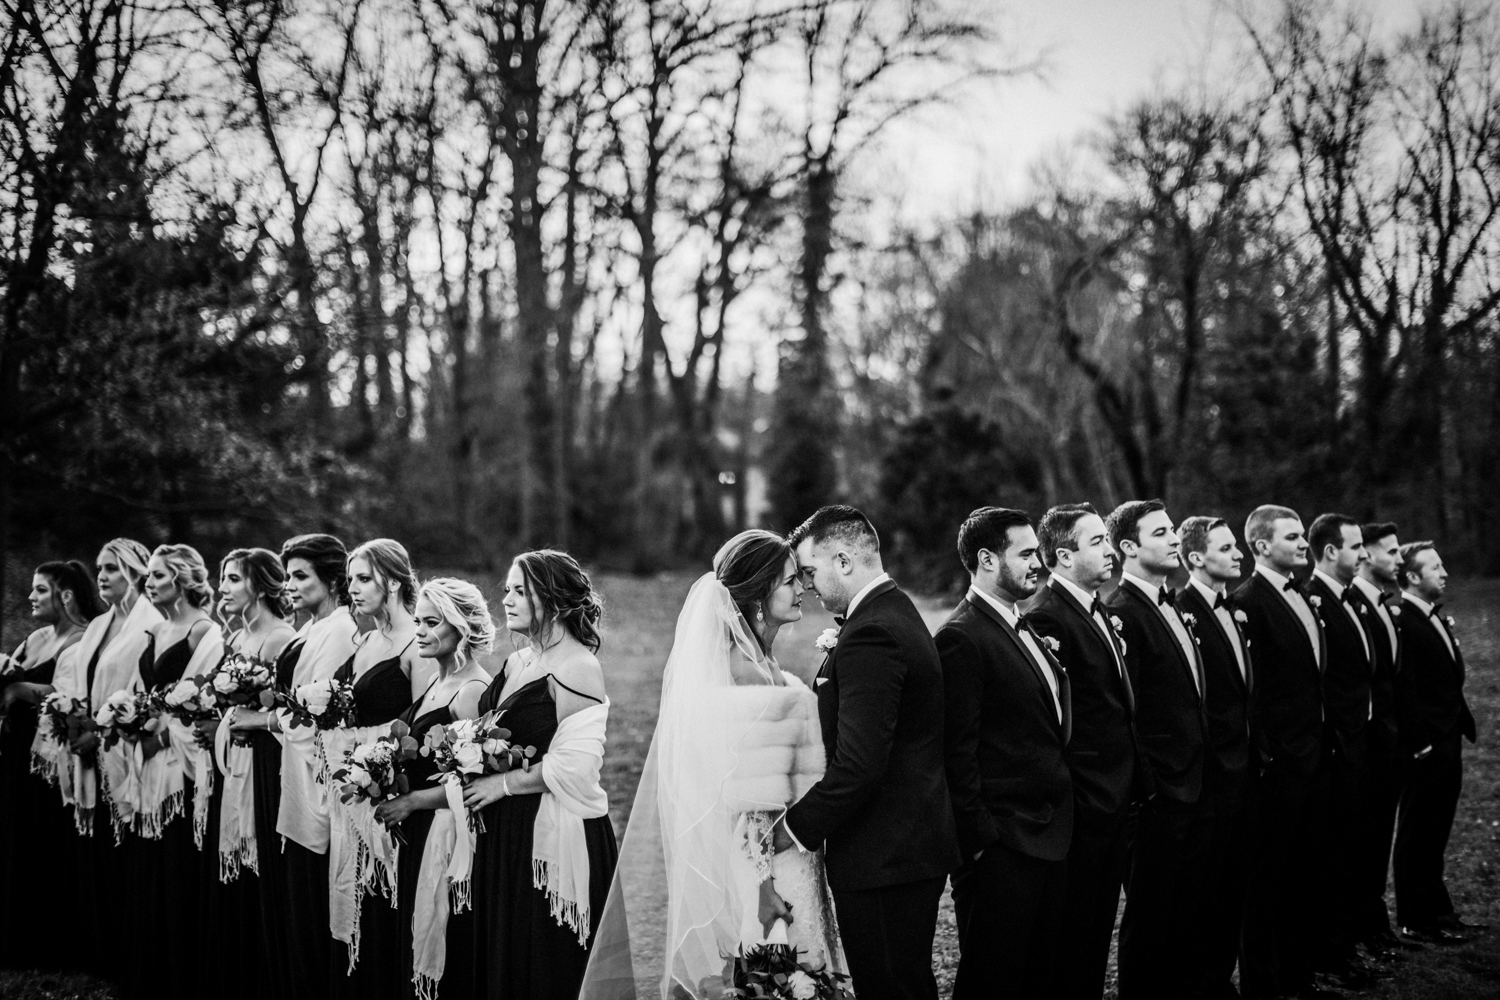 The-Mansion-NJ-Wedding-Jenna-Lynn-Photography-BriannaJimmy-BridalPartyBW-11.jpg